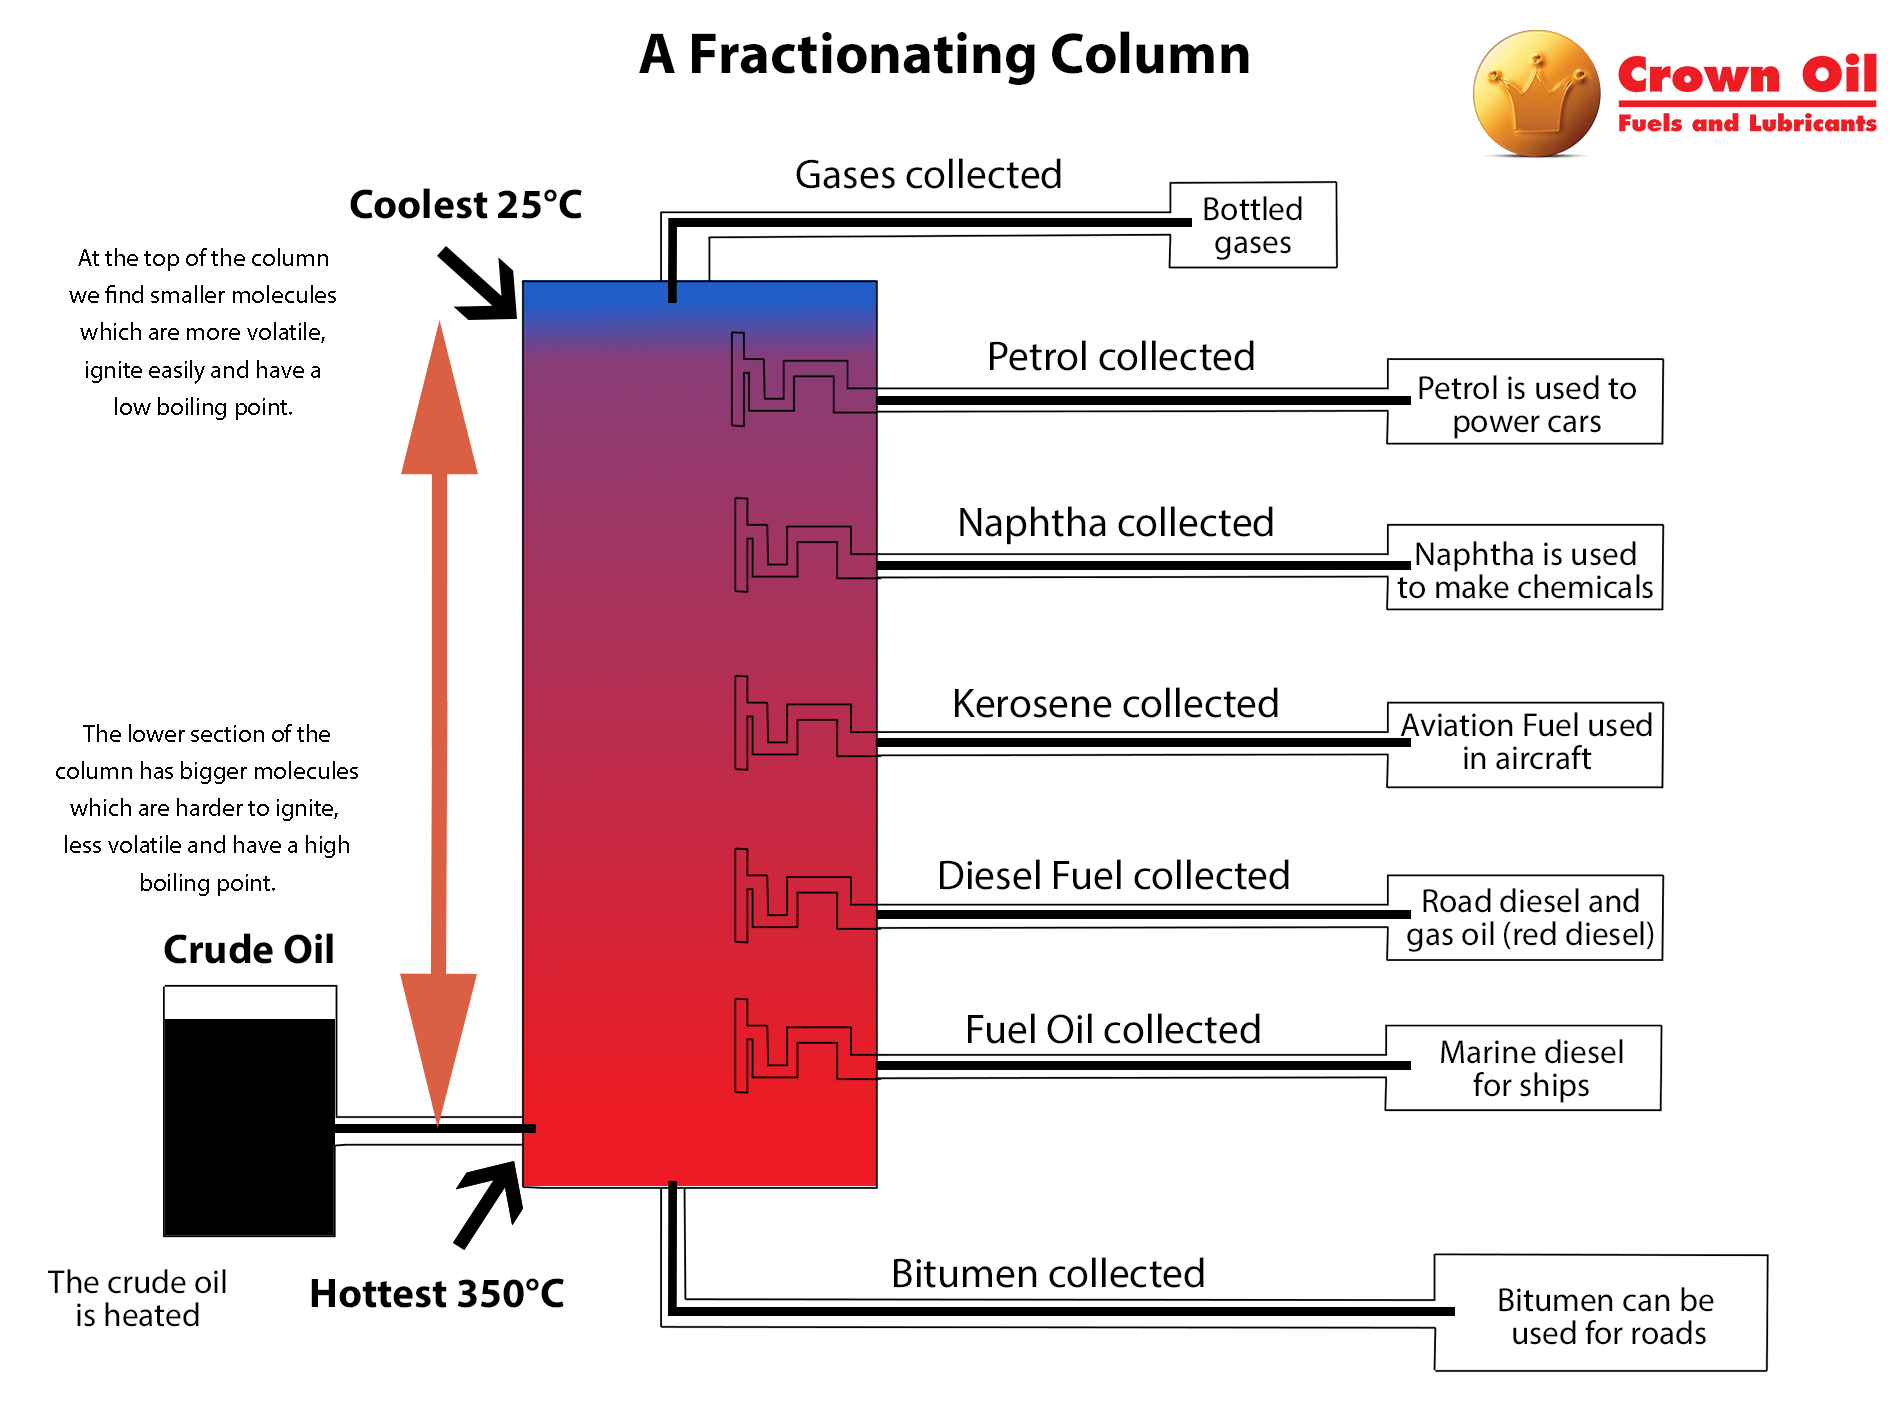 This Is A Fractionating Column Where Crude Oil Is Heated